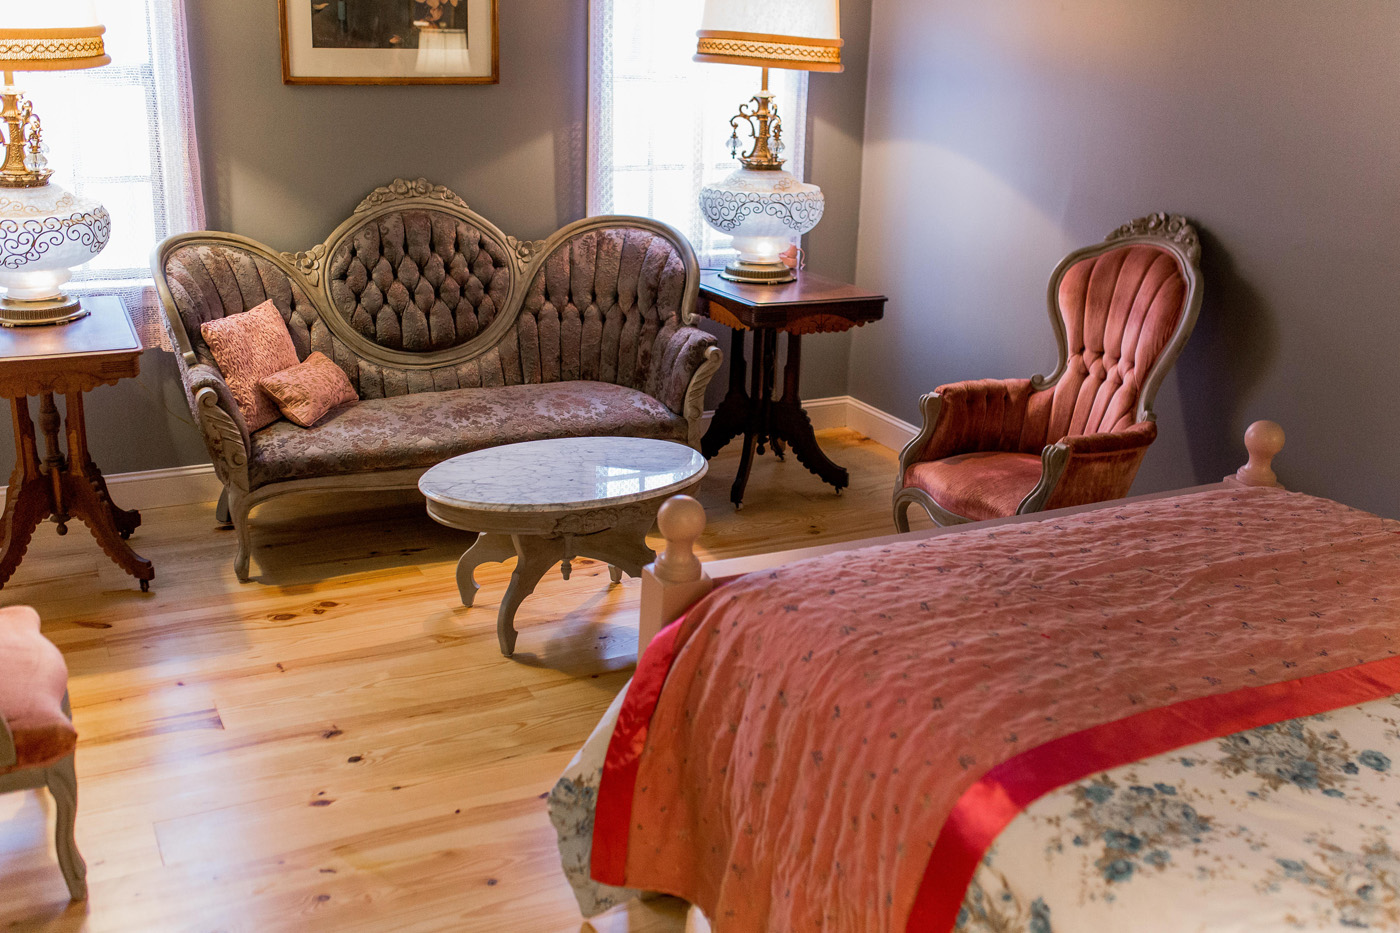 The Lydia Room at The Victoria House Bed & Breakfast in Riceville, Tennessee